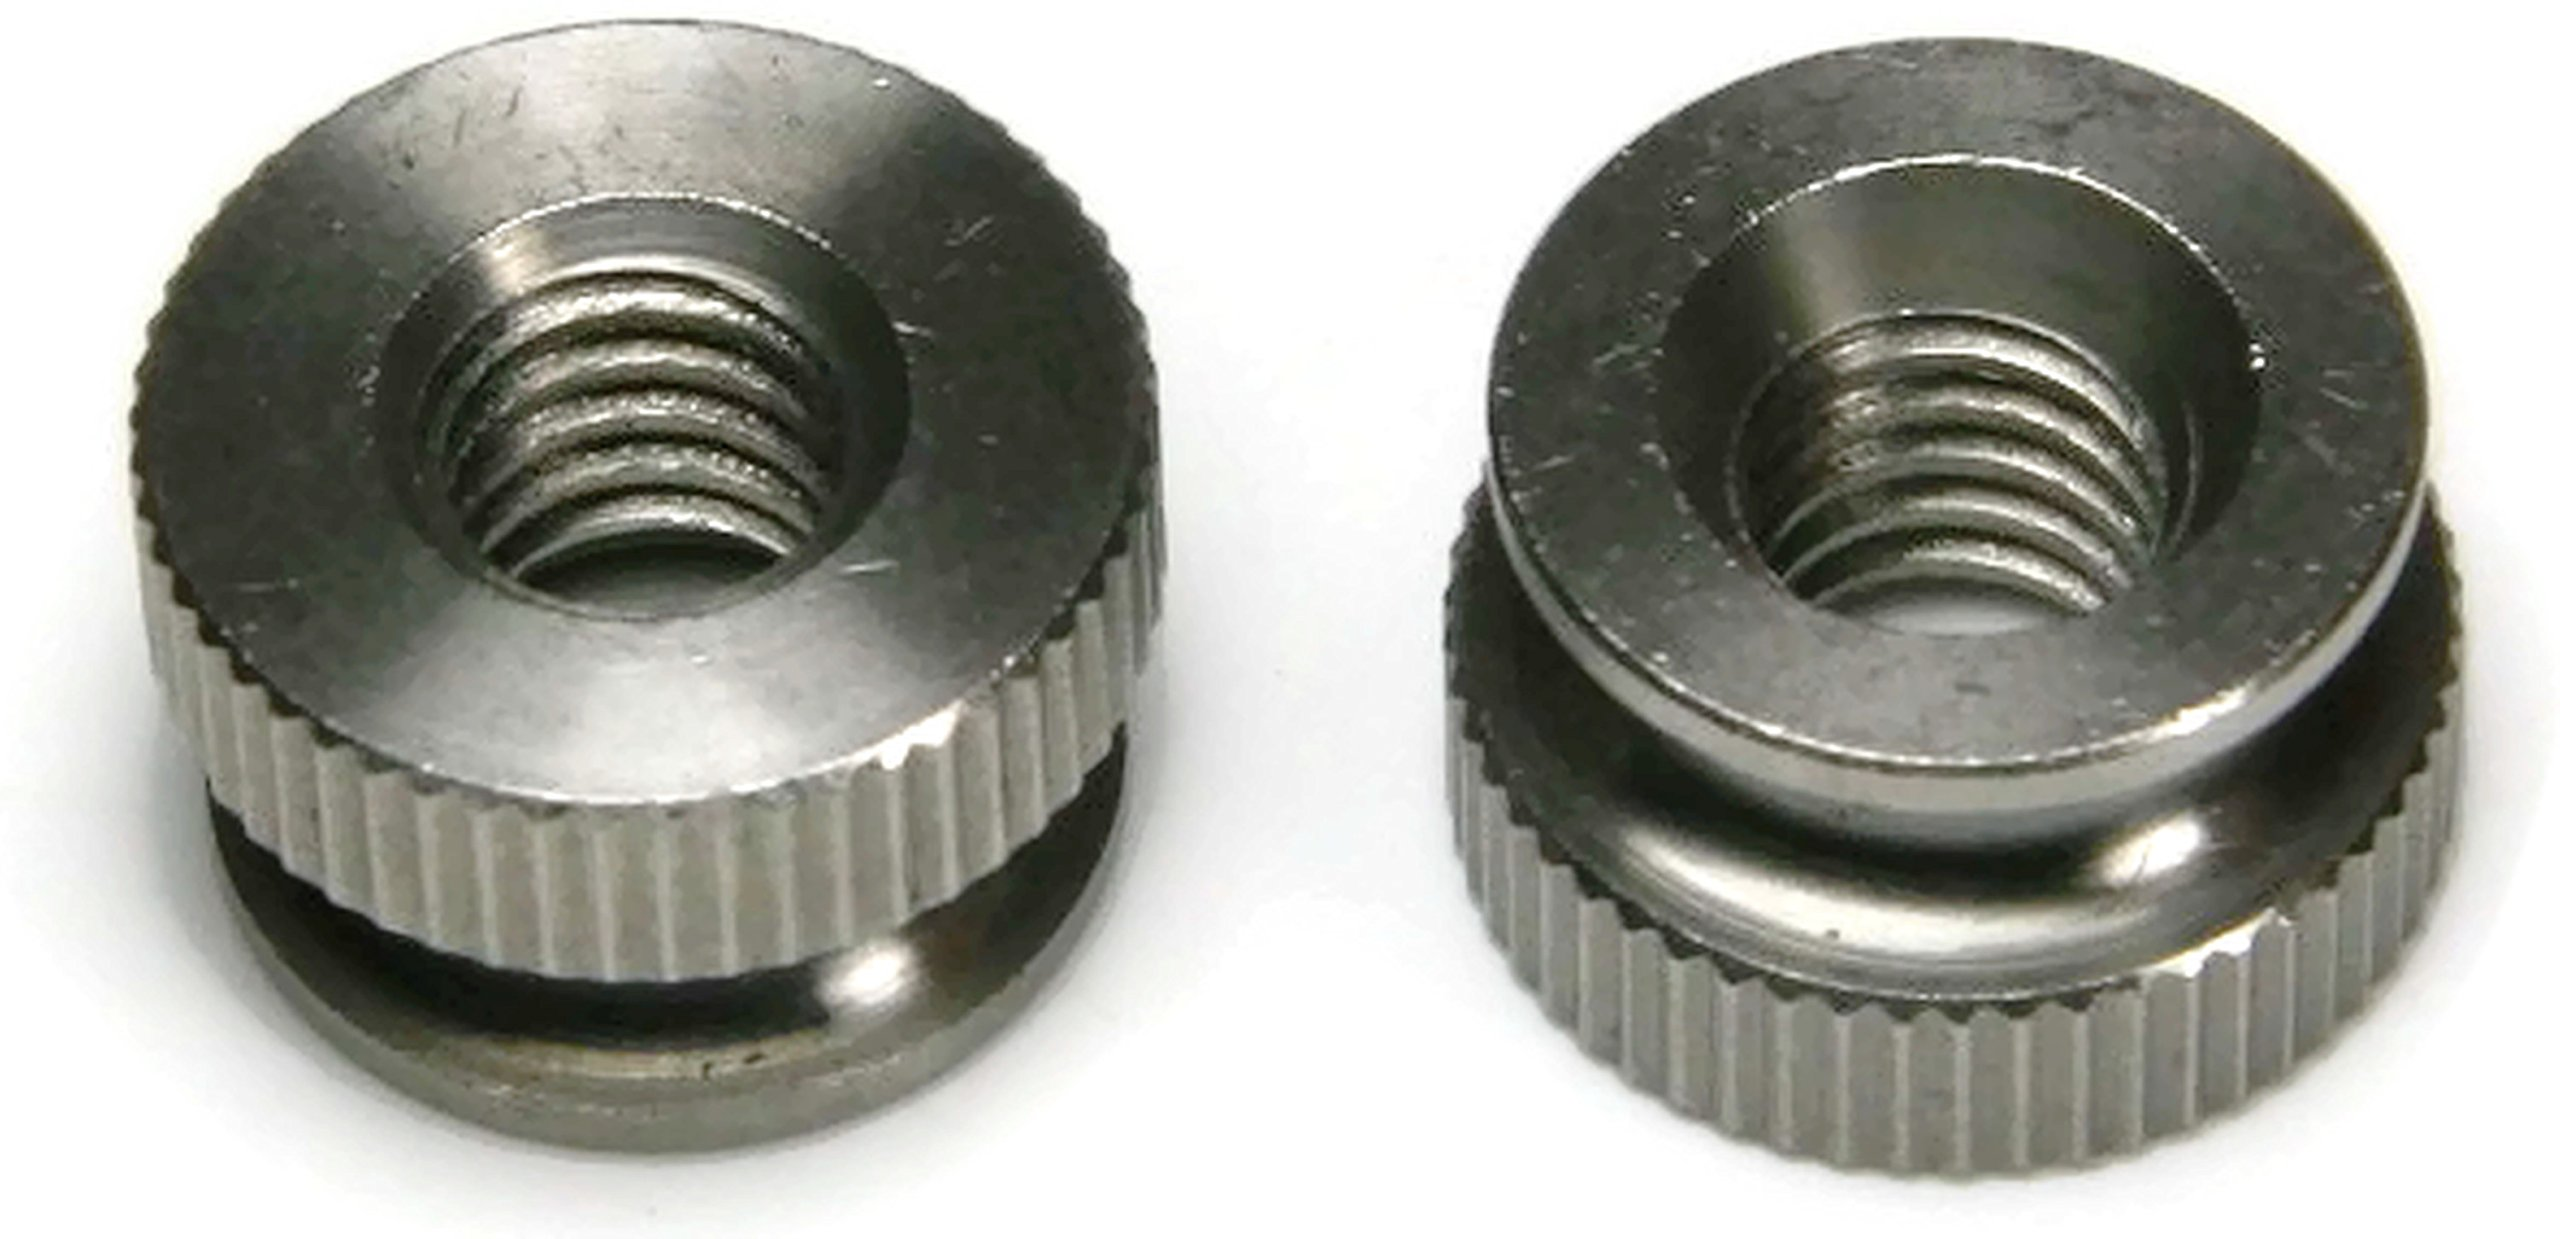 Knurled Head Thumb Nut 18-8 Stainless Steel Nuts USA Made - #10-32 (1/2'' Dia x 21/64'' THK) - Qty-10 by RAW PRODUCTS CORP